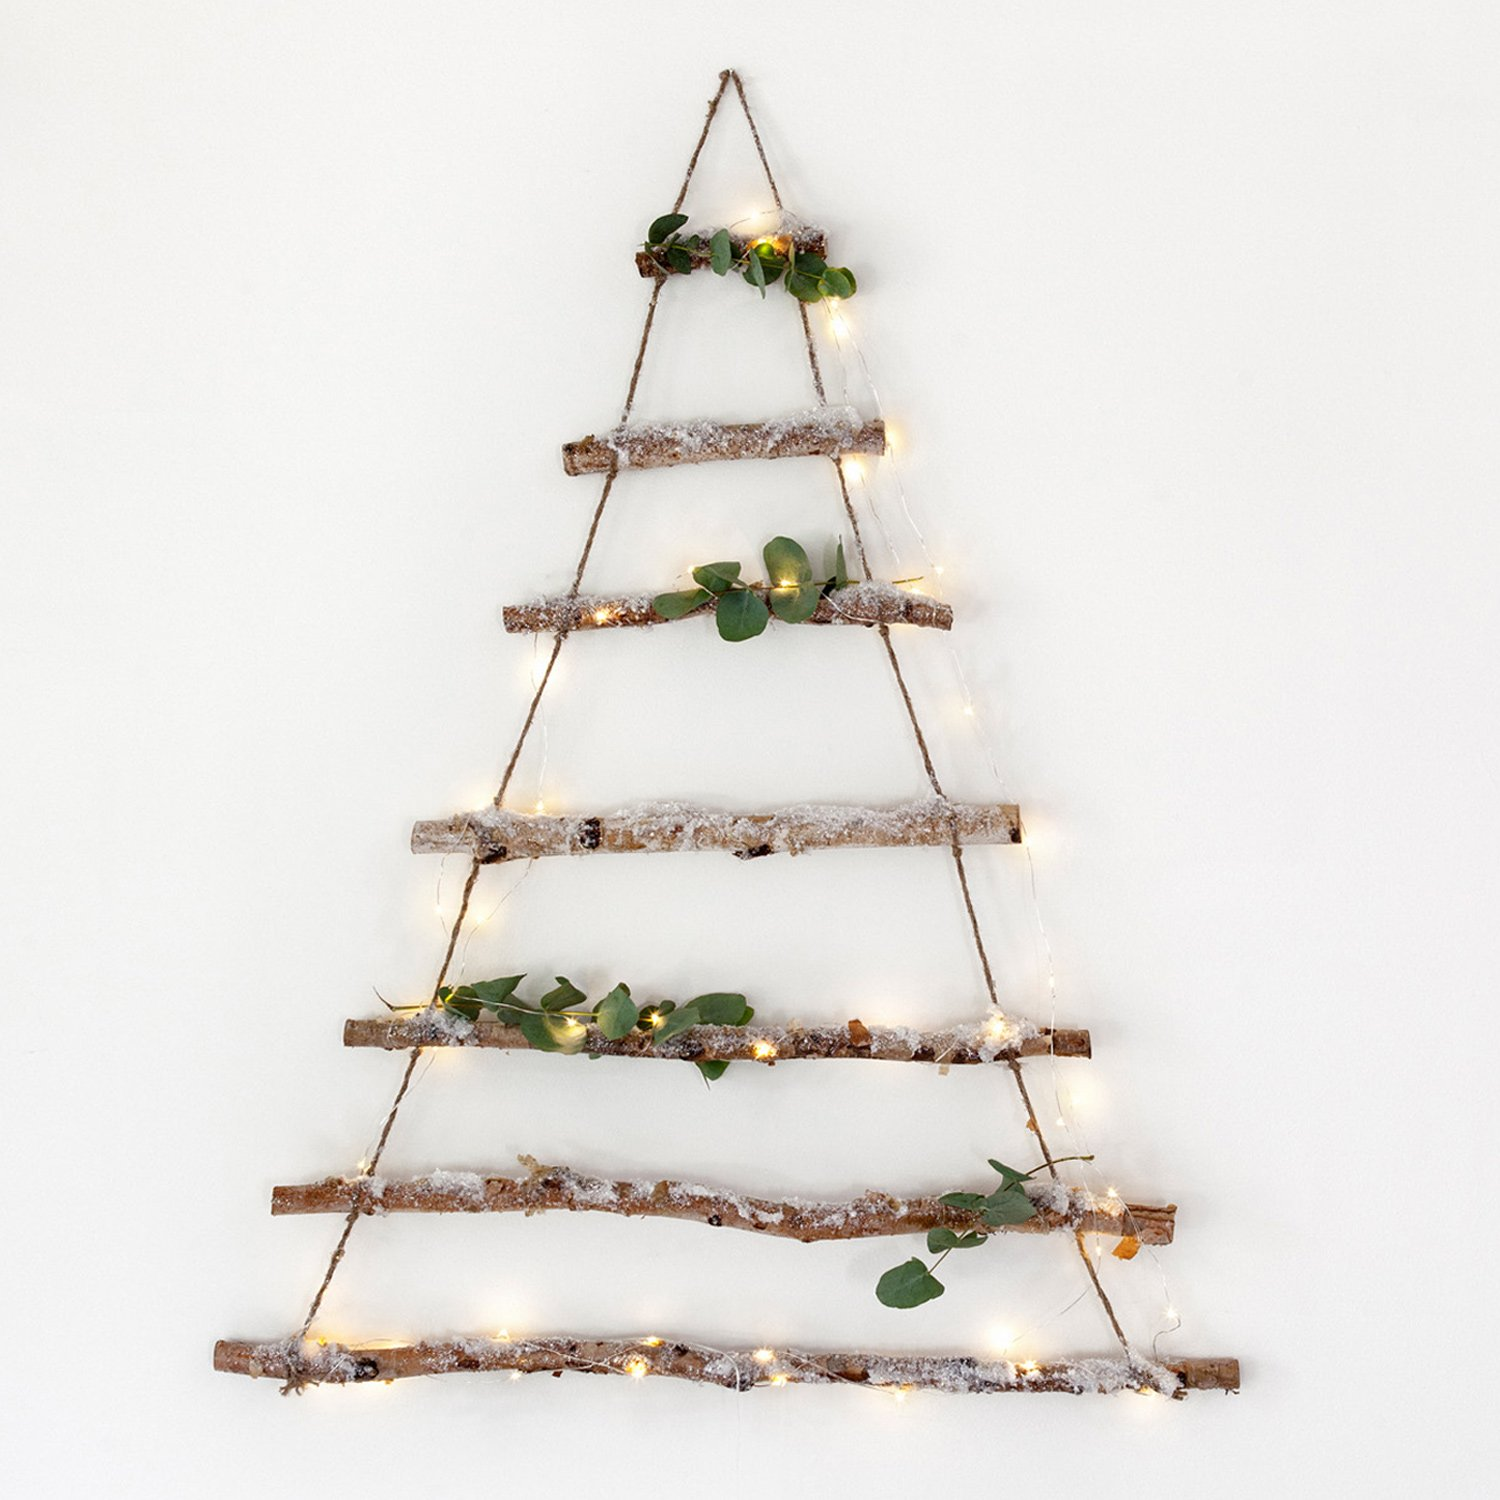 birch branch hanging christmas tree with snow dusting by lights4fun amazoncouk kitchen home - Wall Mounted Christmas Tree